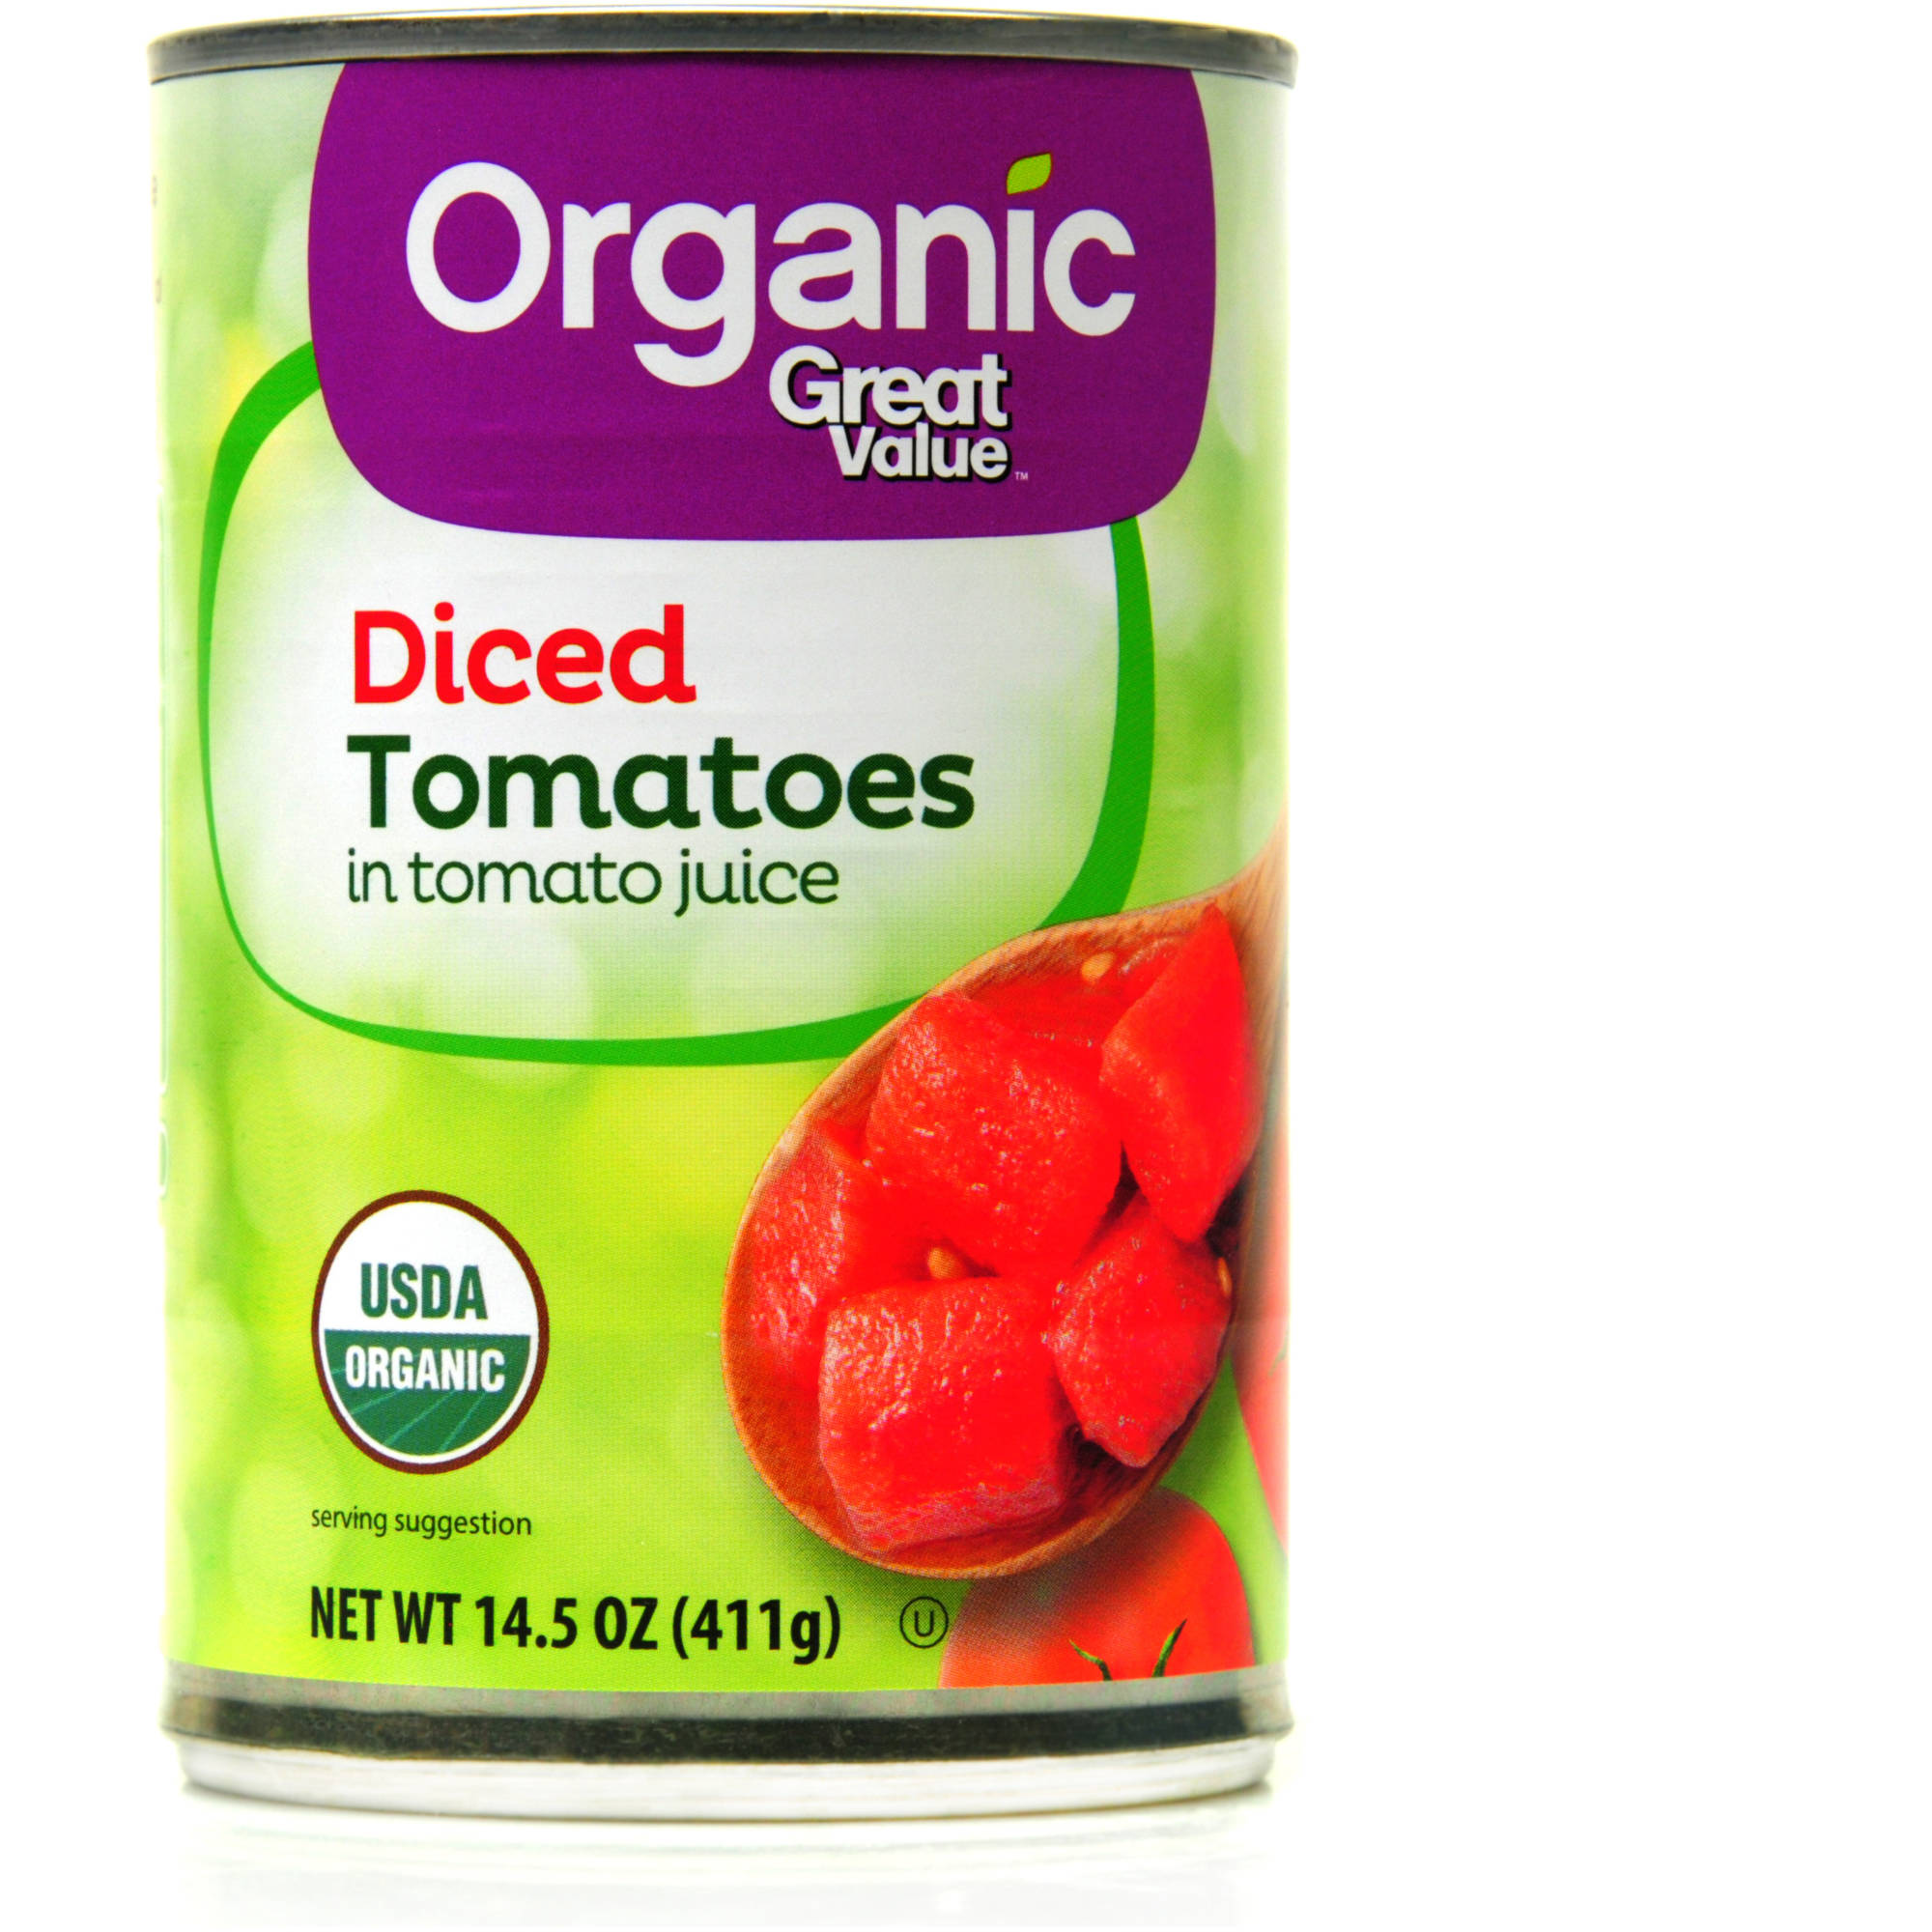 Great Value Organic Diced Tomatoes, 14.5 oz